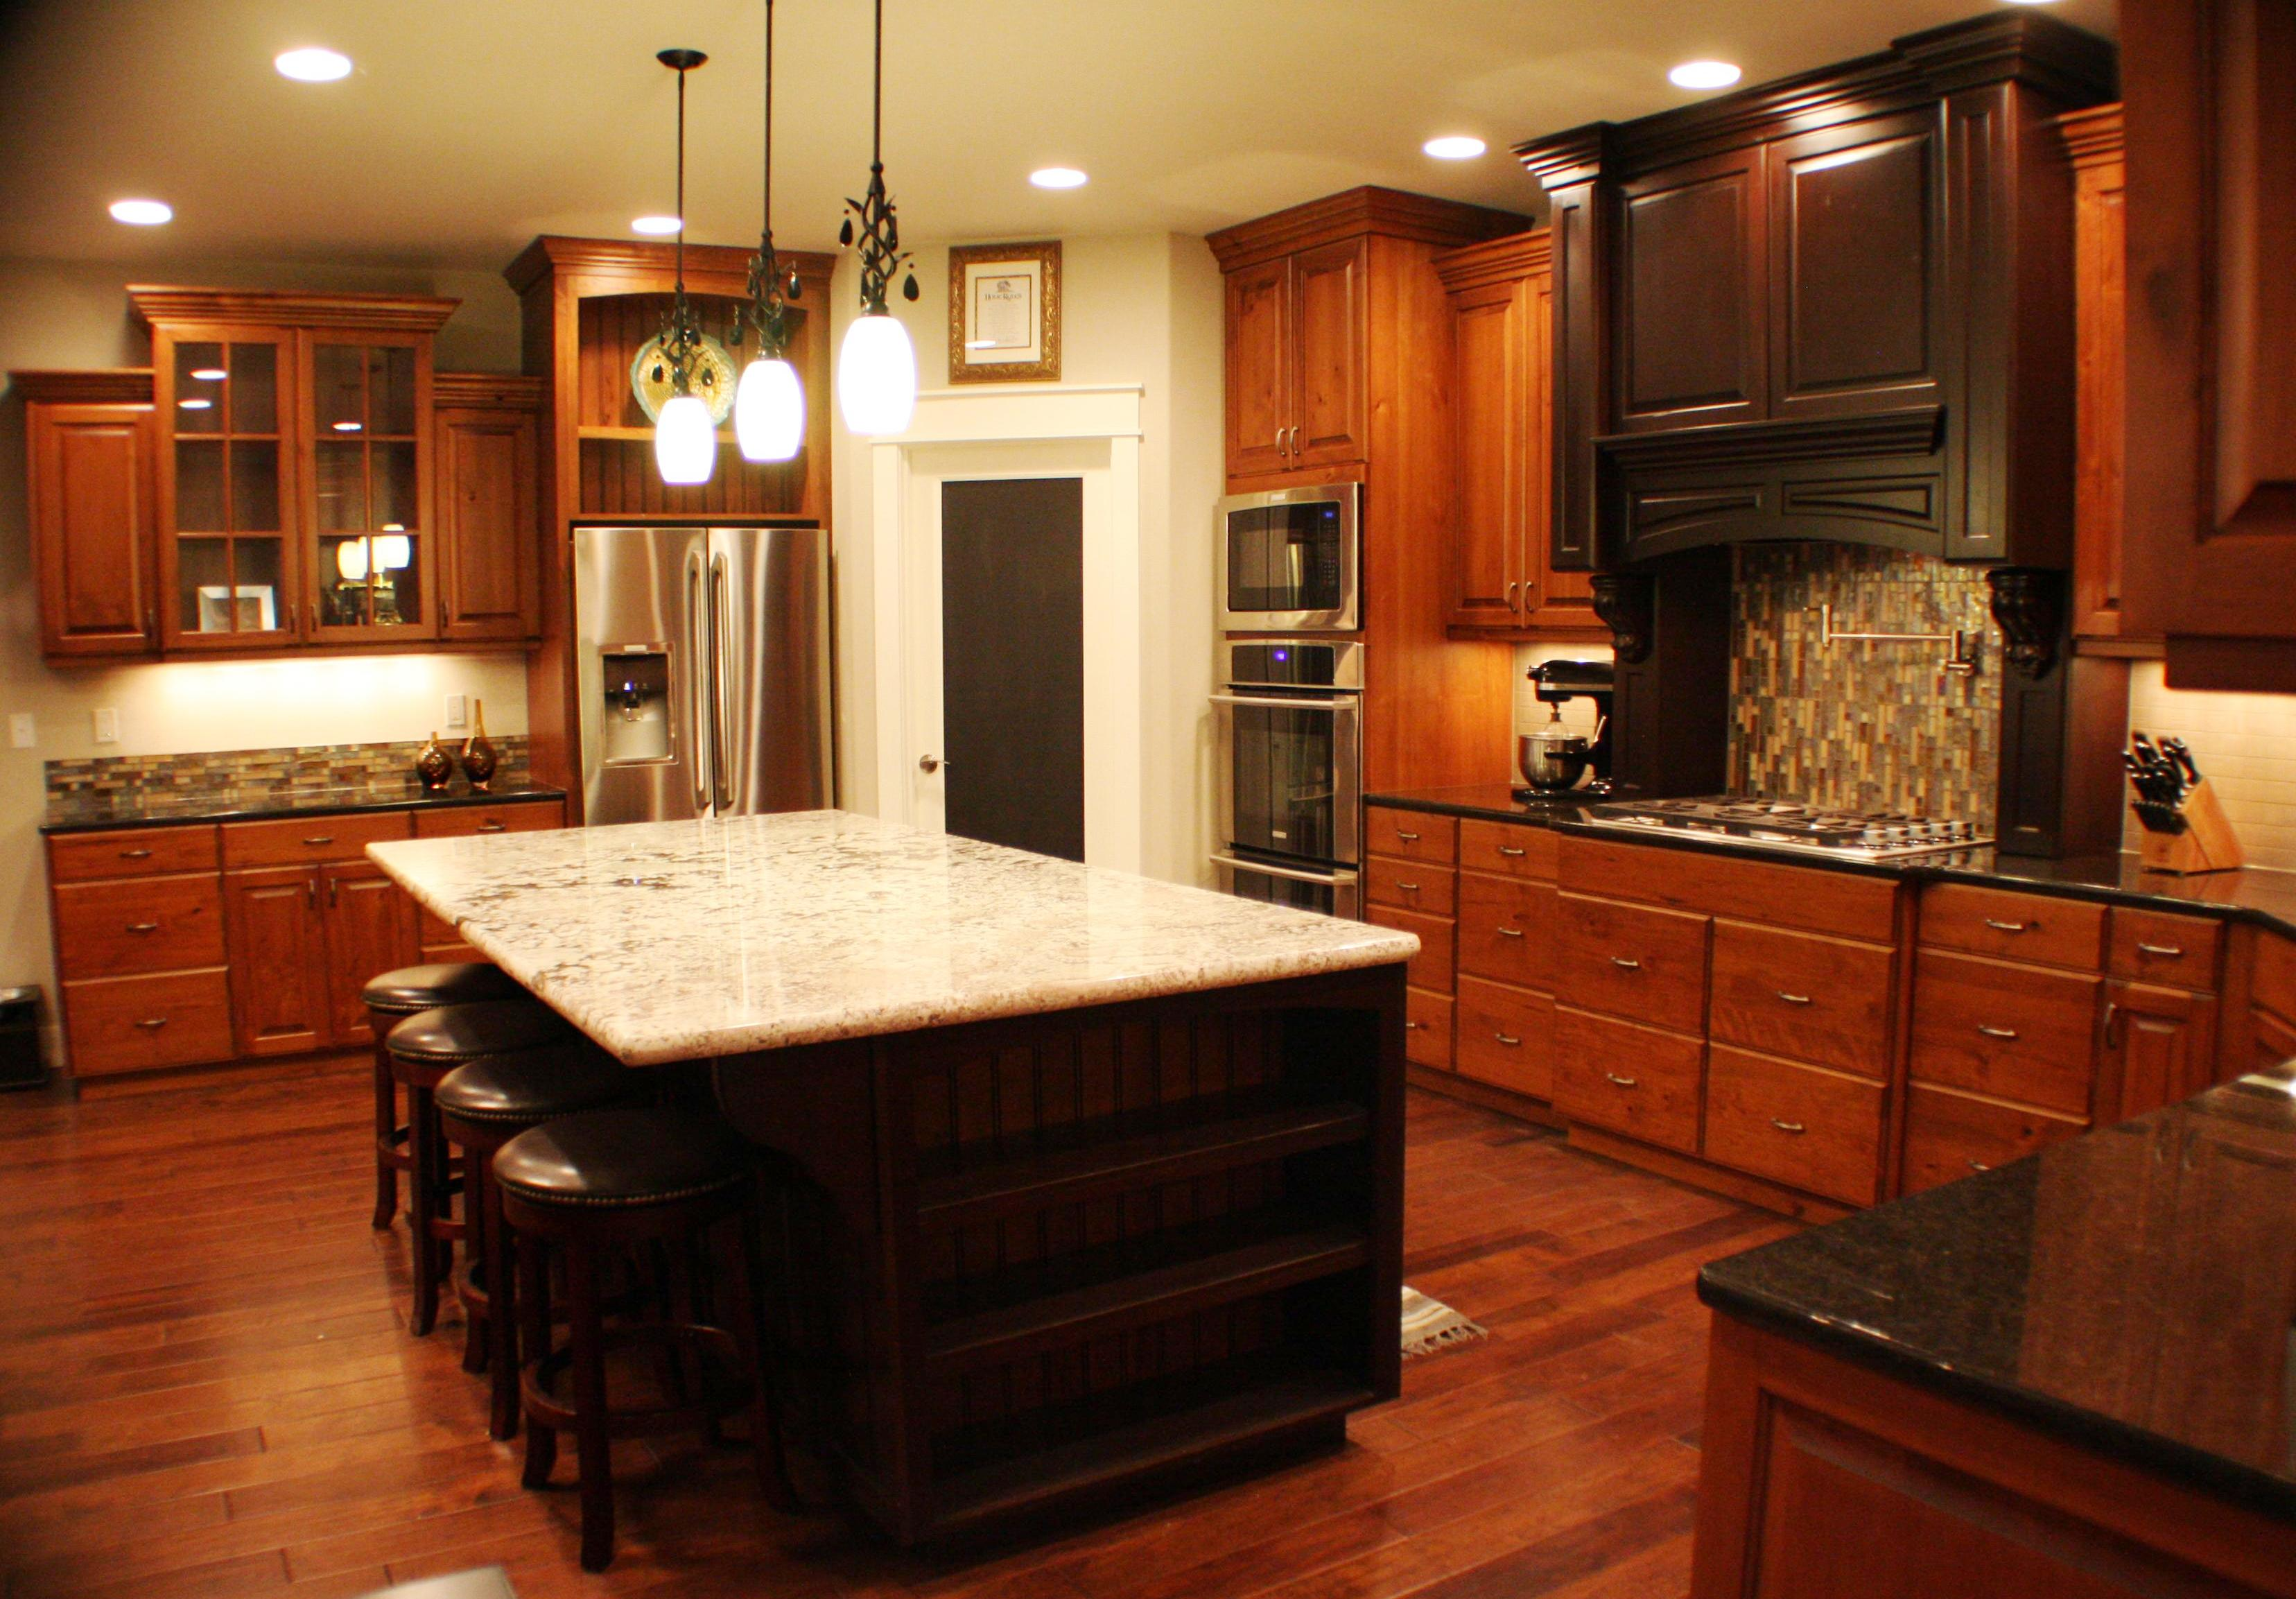 Custom cherry kitchen cabinets finished with Easy Oak colored stain topped with a brown glaze.